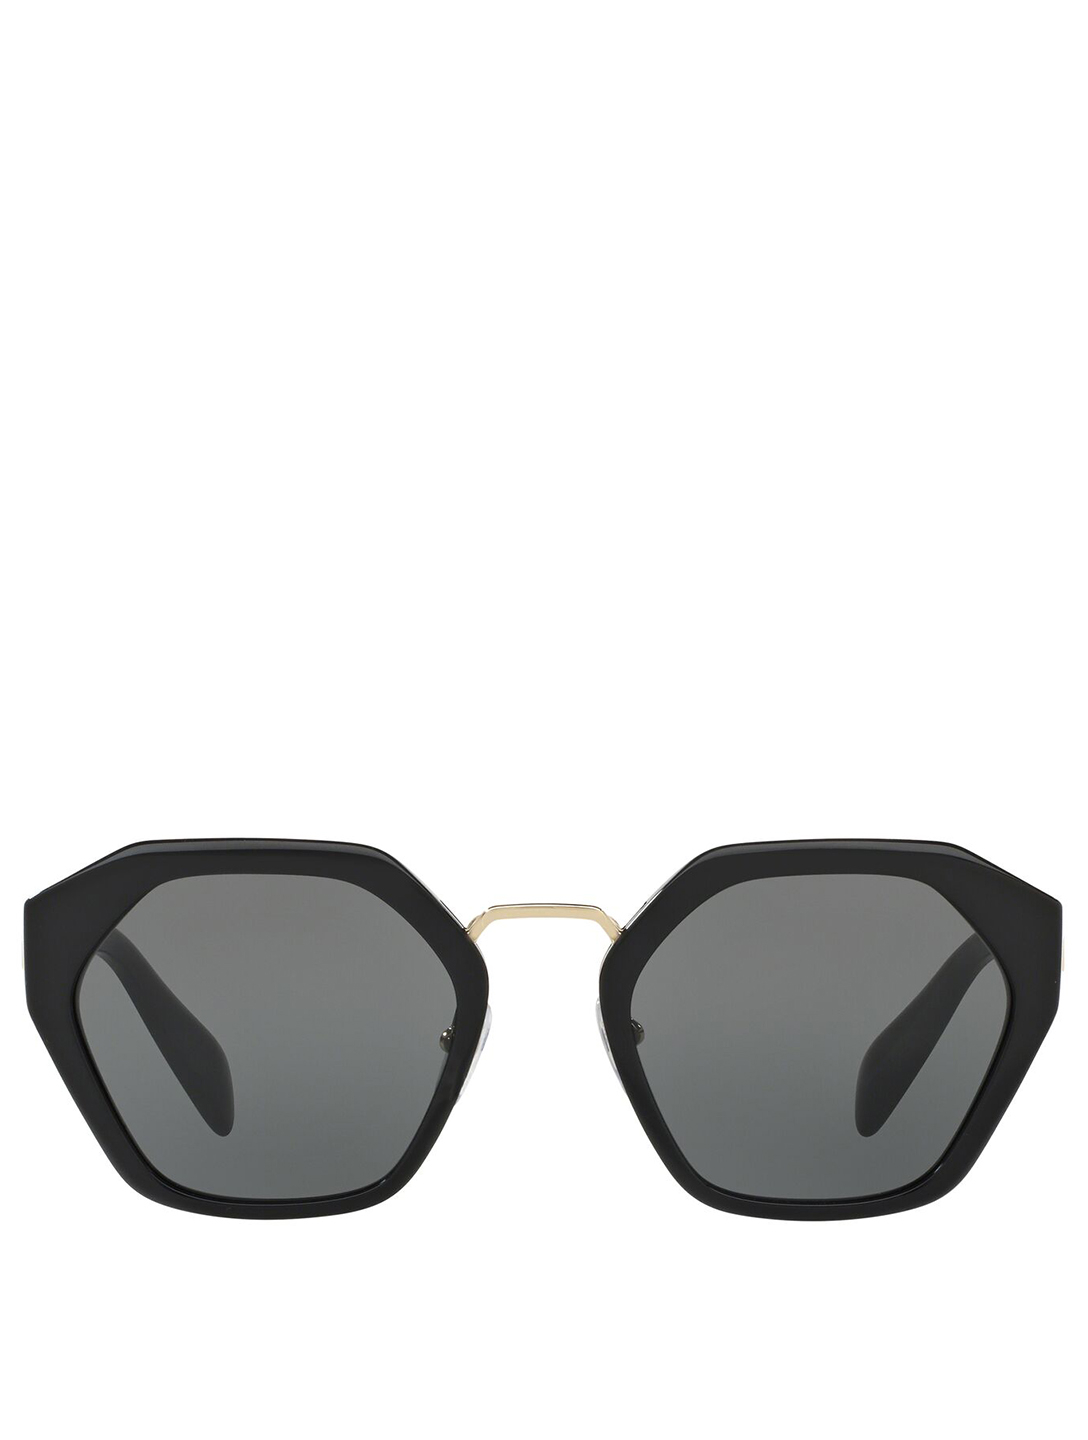 PRADA Octagonal Sunglasses Women's Black